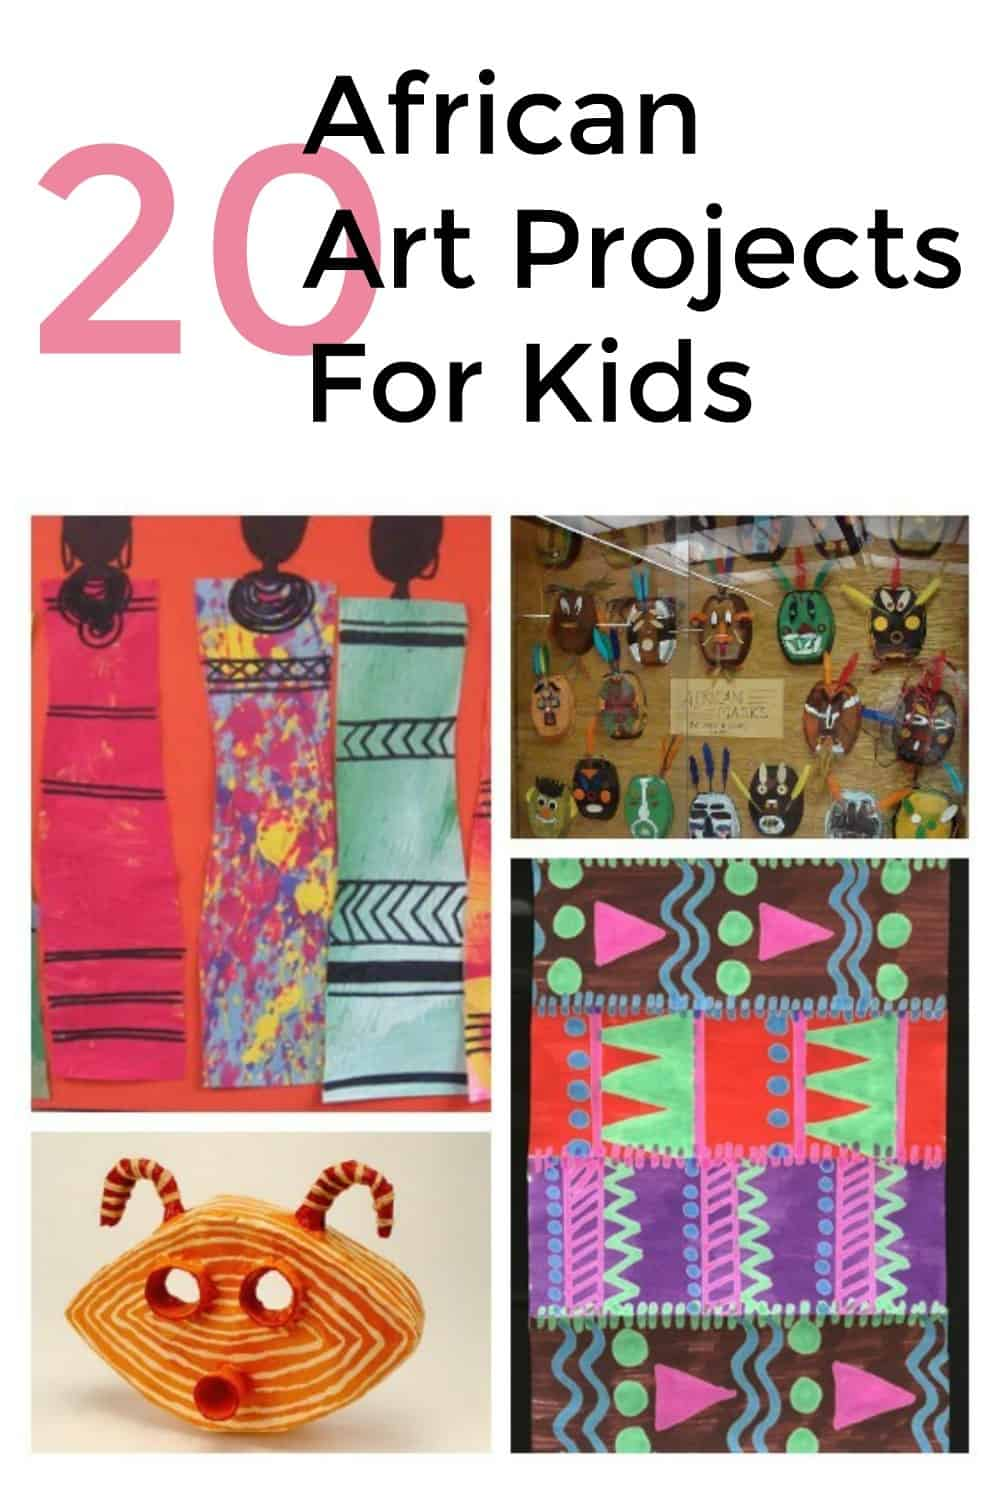 African art projects